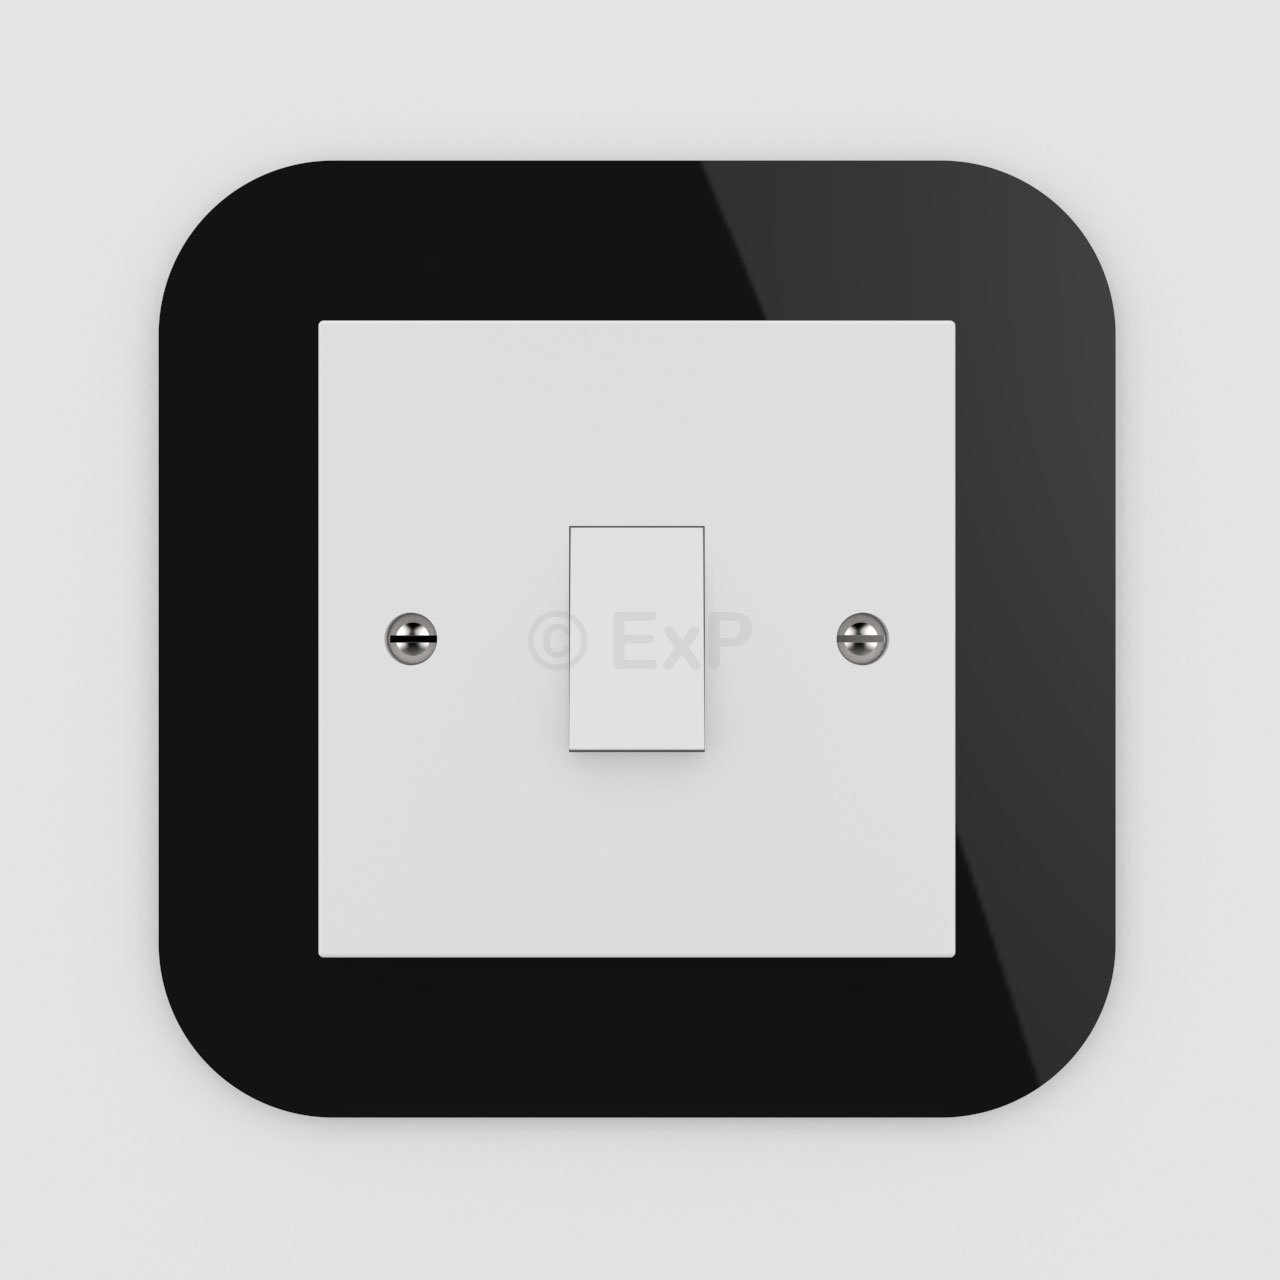 Expression Products Single Light Switch or Plug Socket Back Plate Finger Surround Panel Clear Free Trolley Token Material Sample Included per Shipment